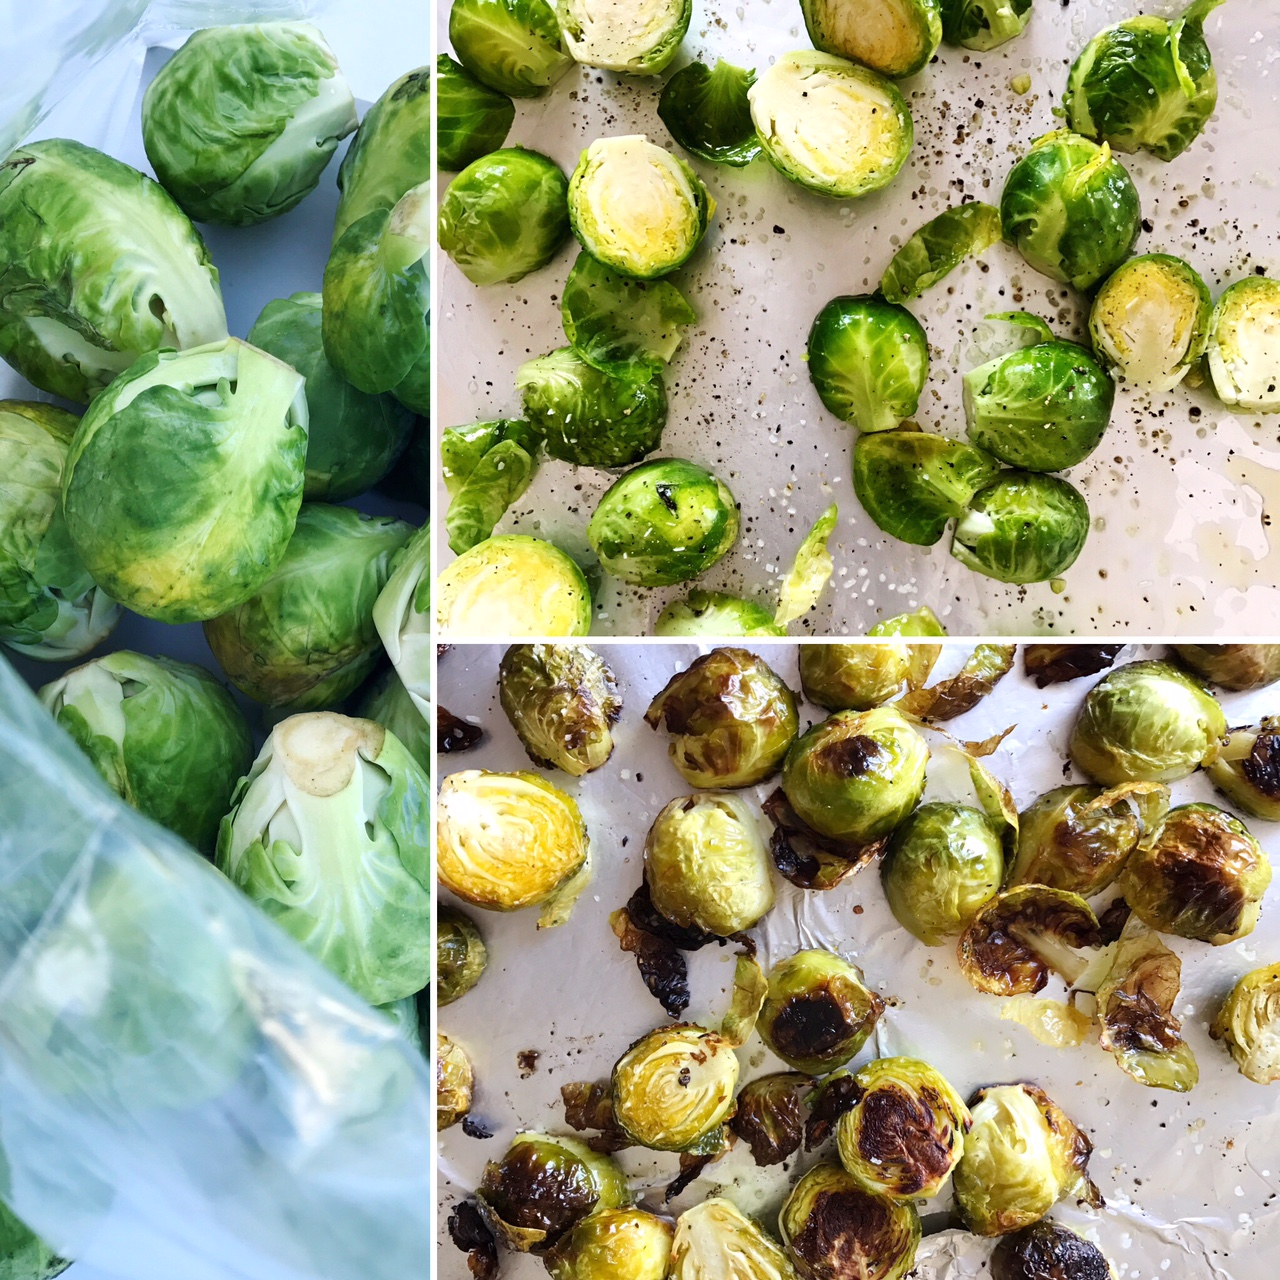 Roasted Brussels Sprouts & Baby Greens Salad